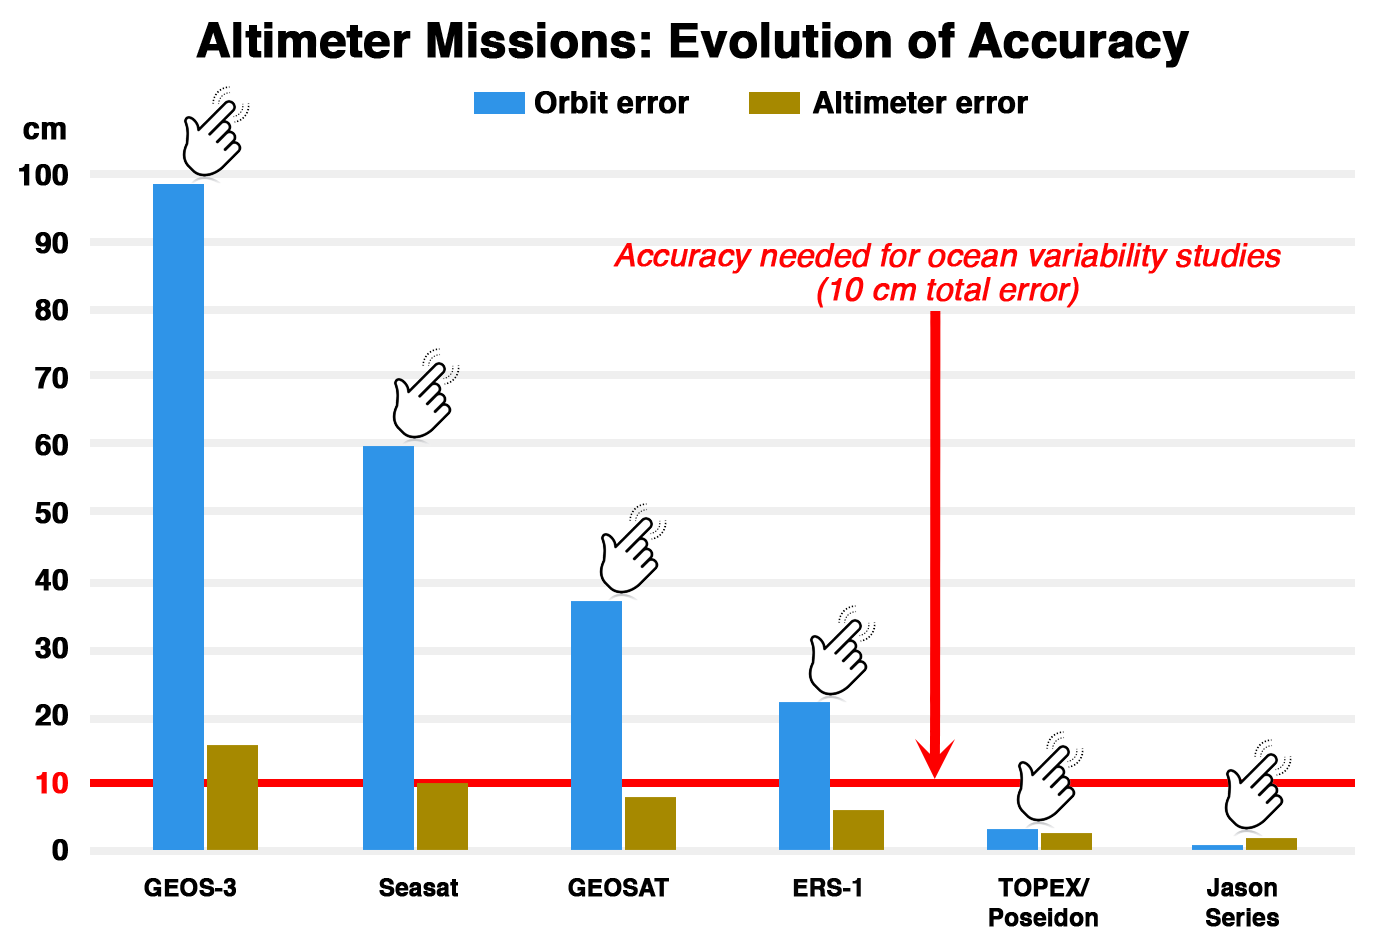 Altimeter Missions: Evolution of Accuracy